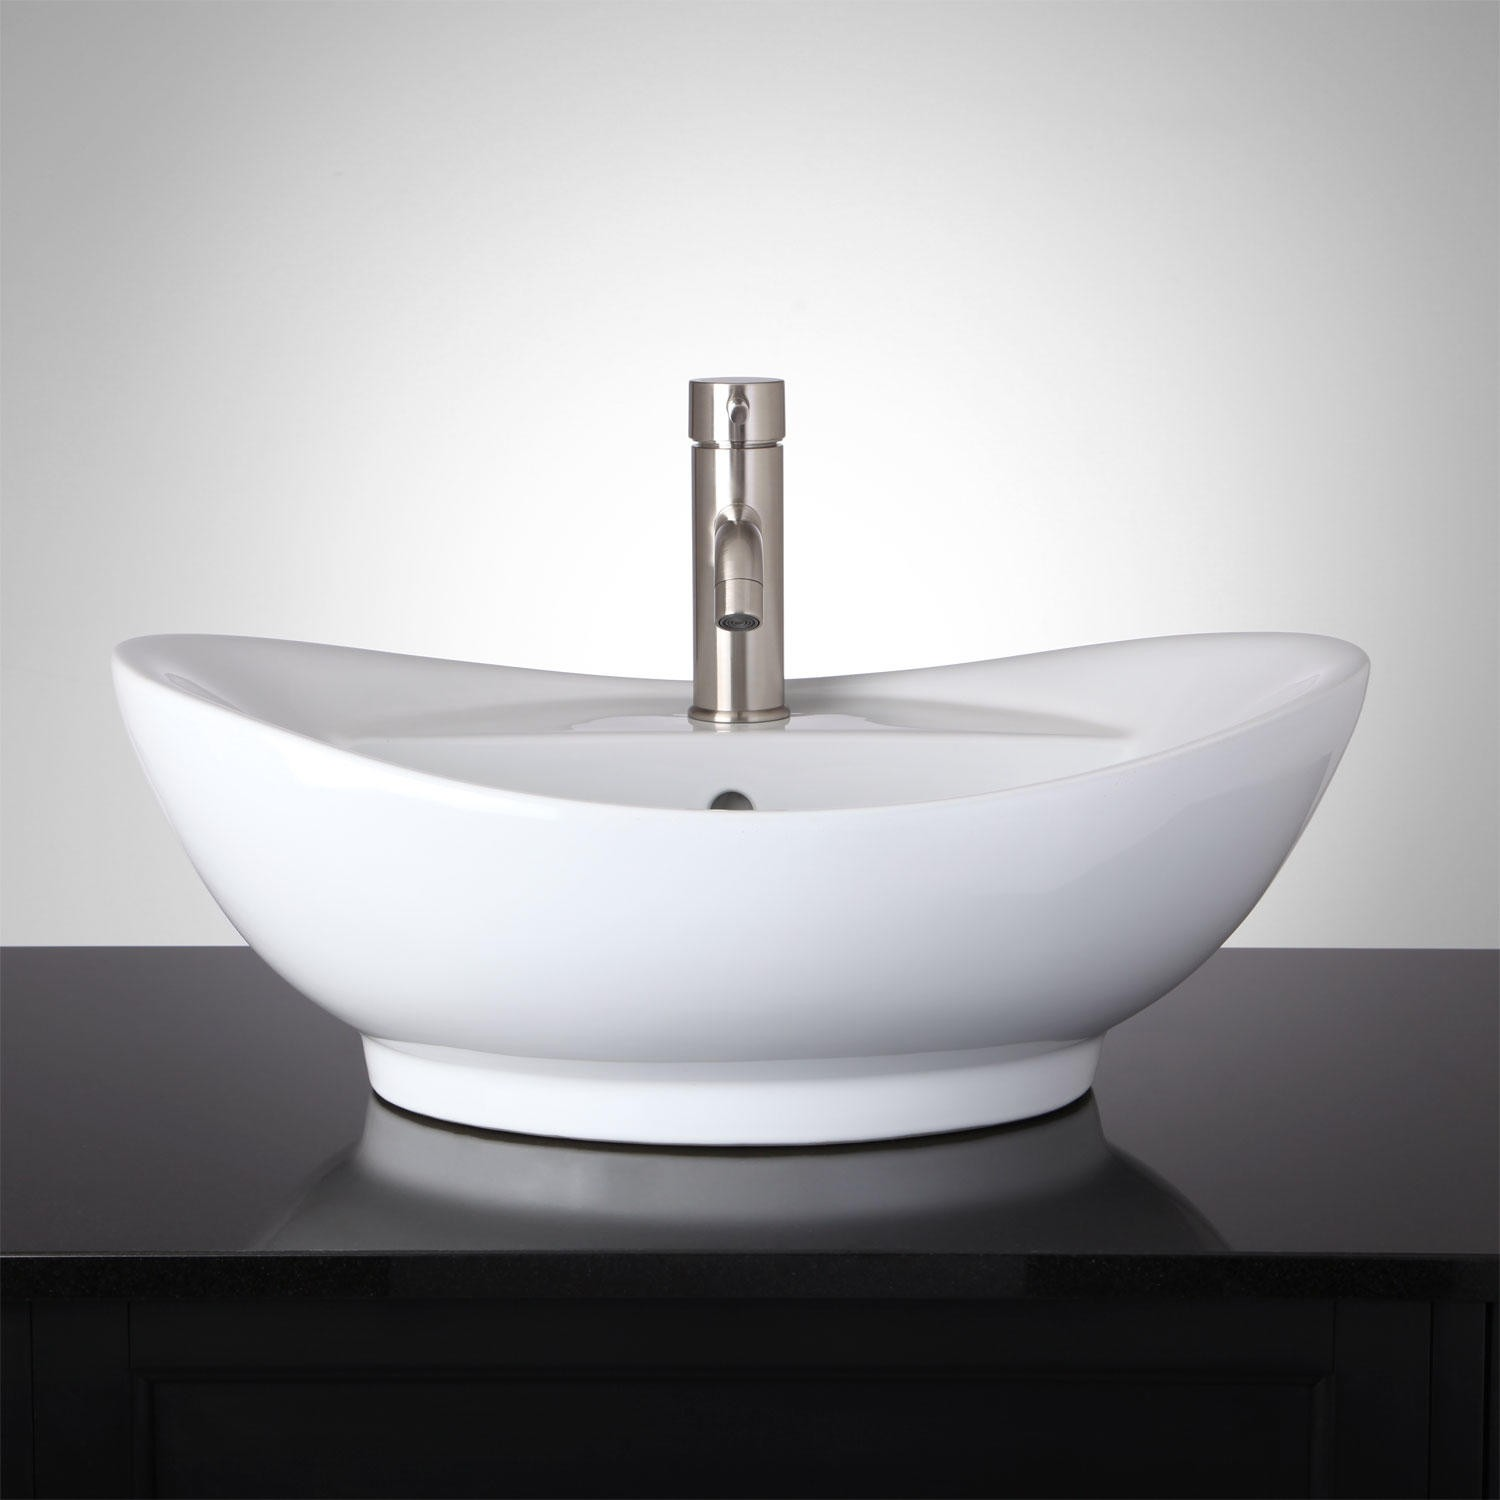 Appealing barclay sinks single bowl double bowl stainless kitchen sink barclay sinks for kitchen ideas